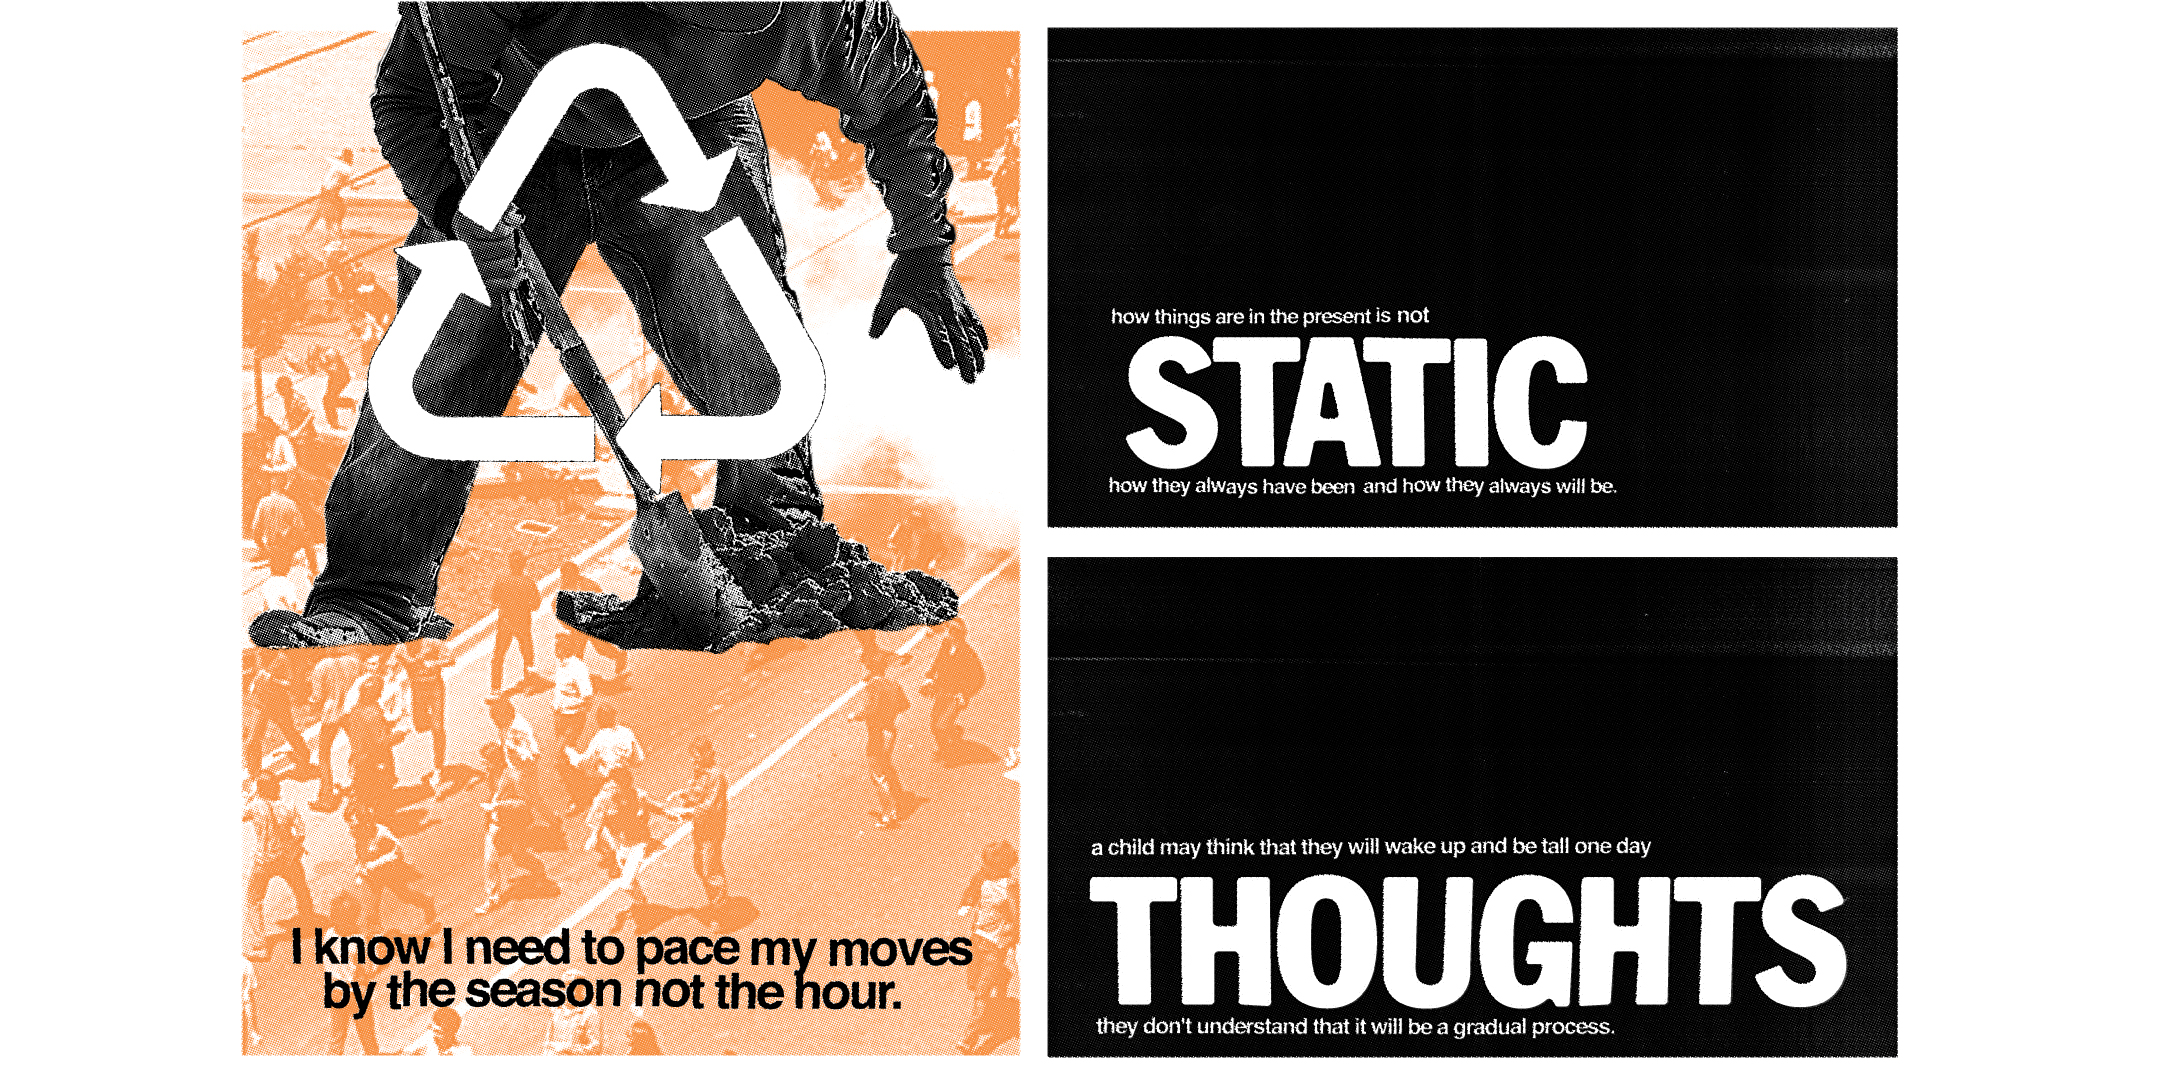 static-thoughts.jpg